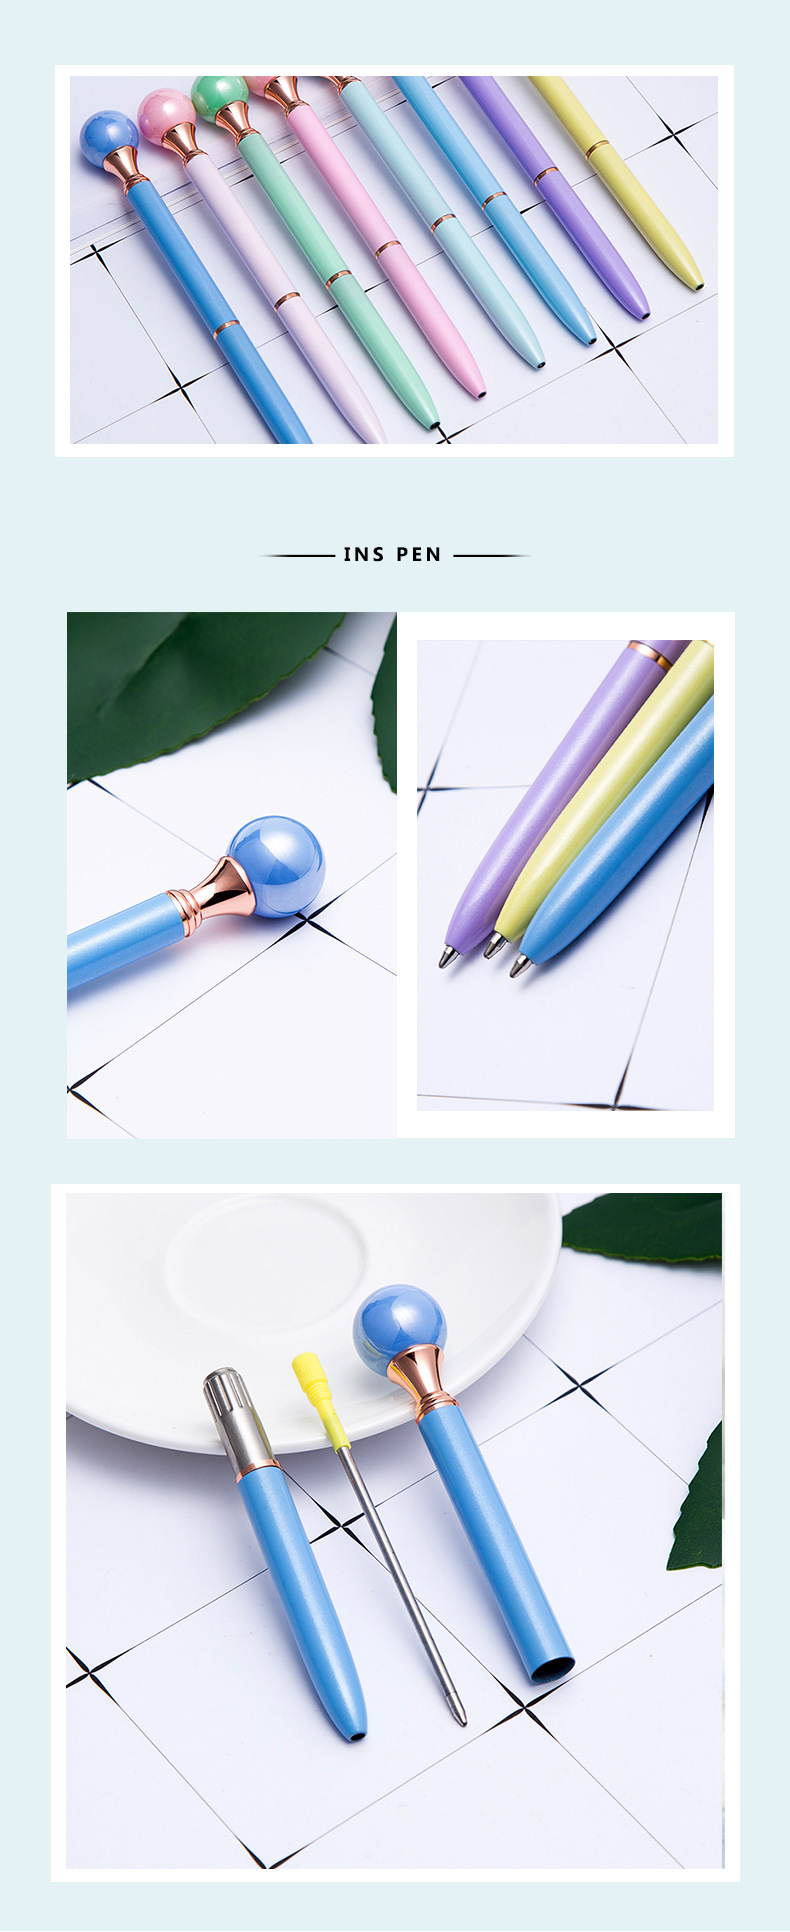 Large Pearl New Crystal Ballpoint Pen Fashion Girl Kawaii Metal Diagram 9036406220 1399852192 9036409498 9036634889 9036364810 9015687320 9015696100